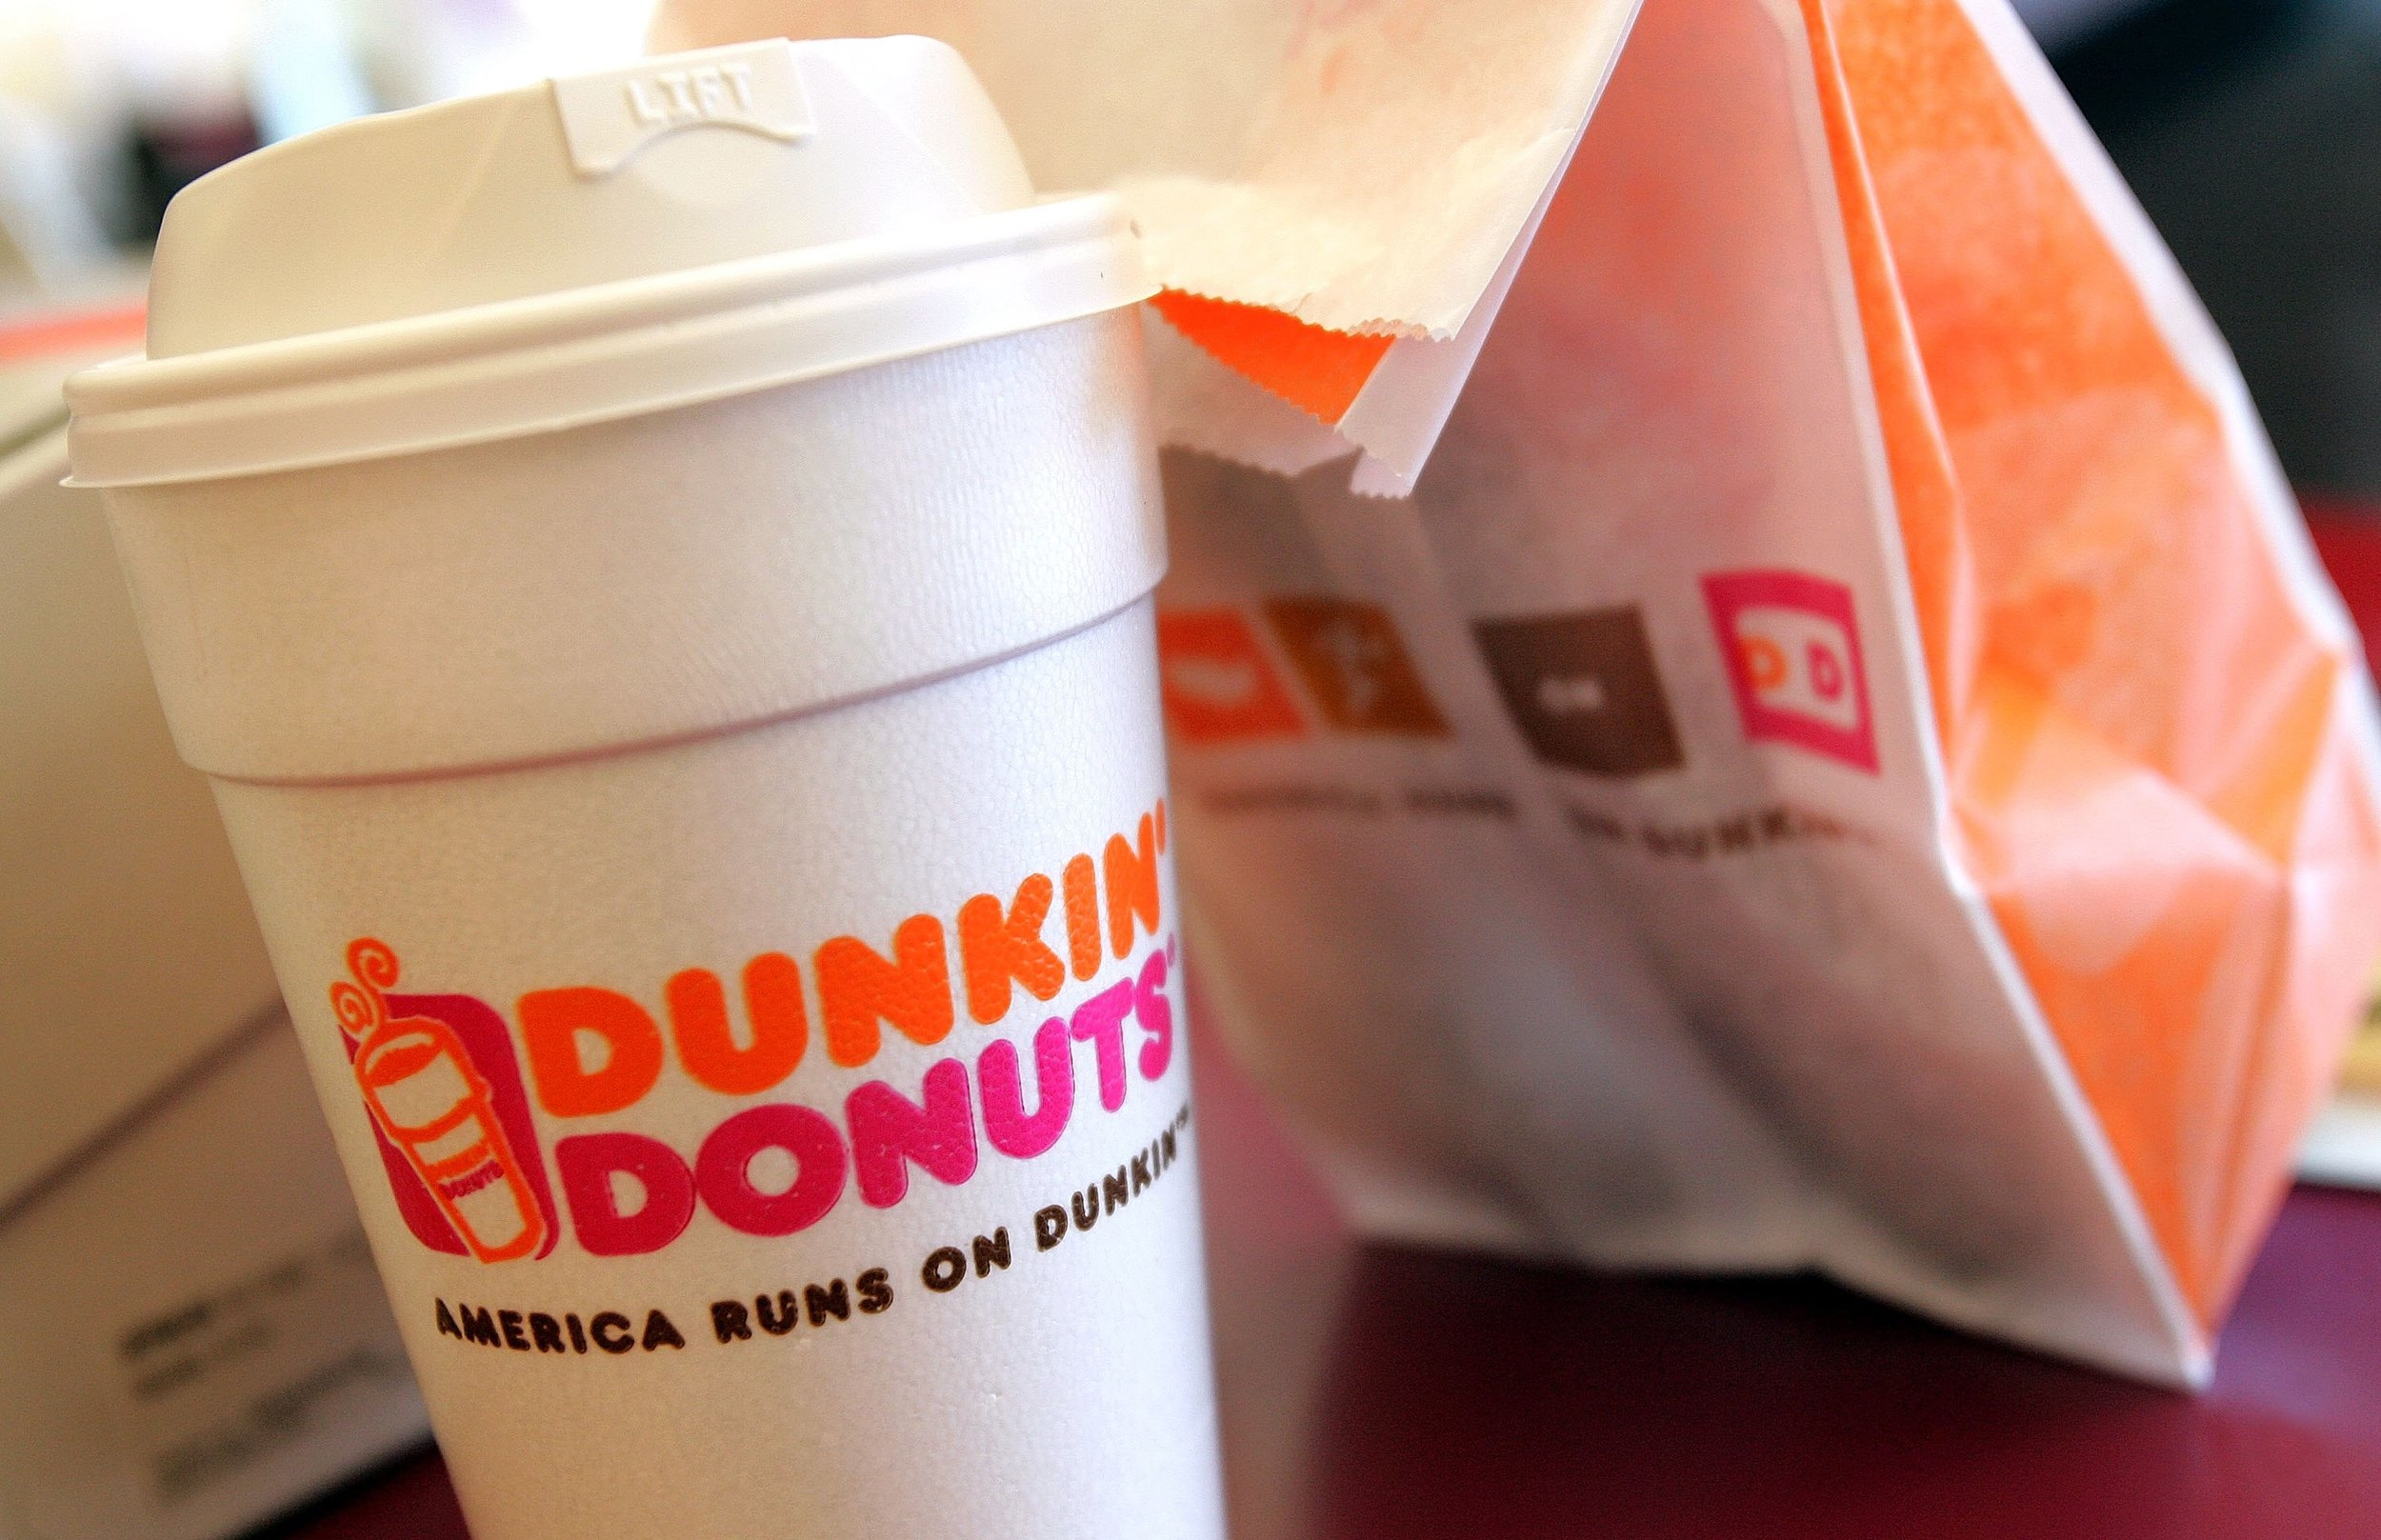 Boston Runs on Dunkin' Photo by Tim Boyle/Getty Images News / Getty Images